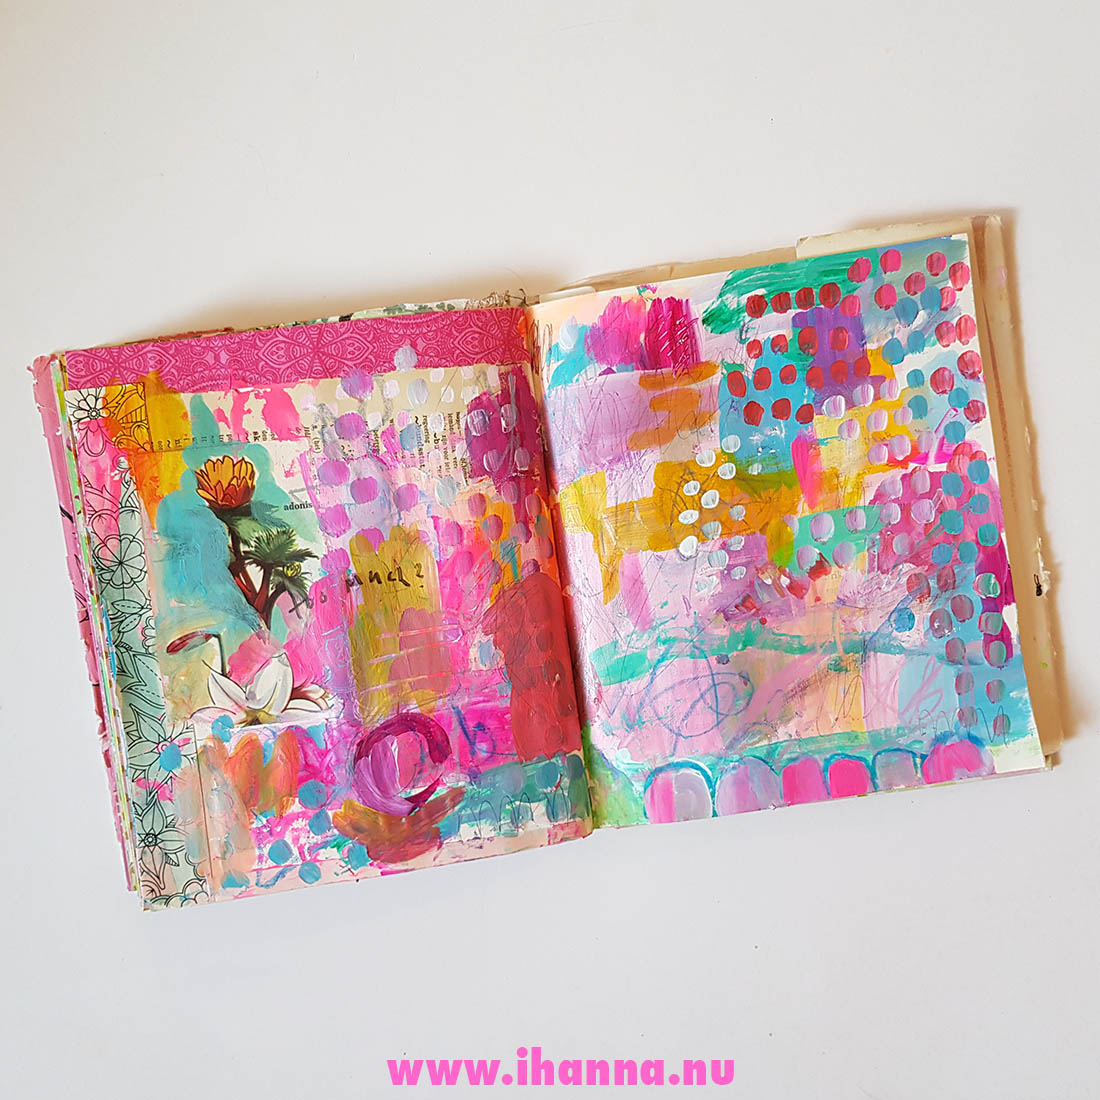 Never too much on a page by Hanna Andersson / iHanna #artjournaling